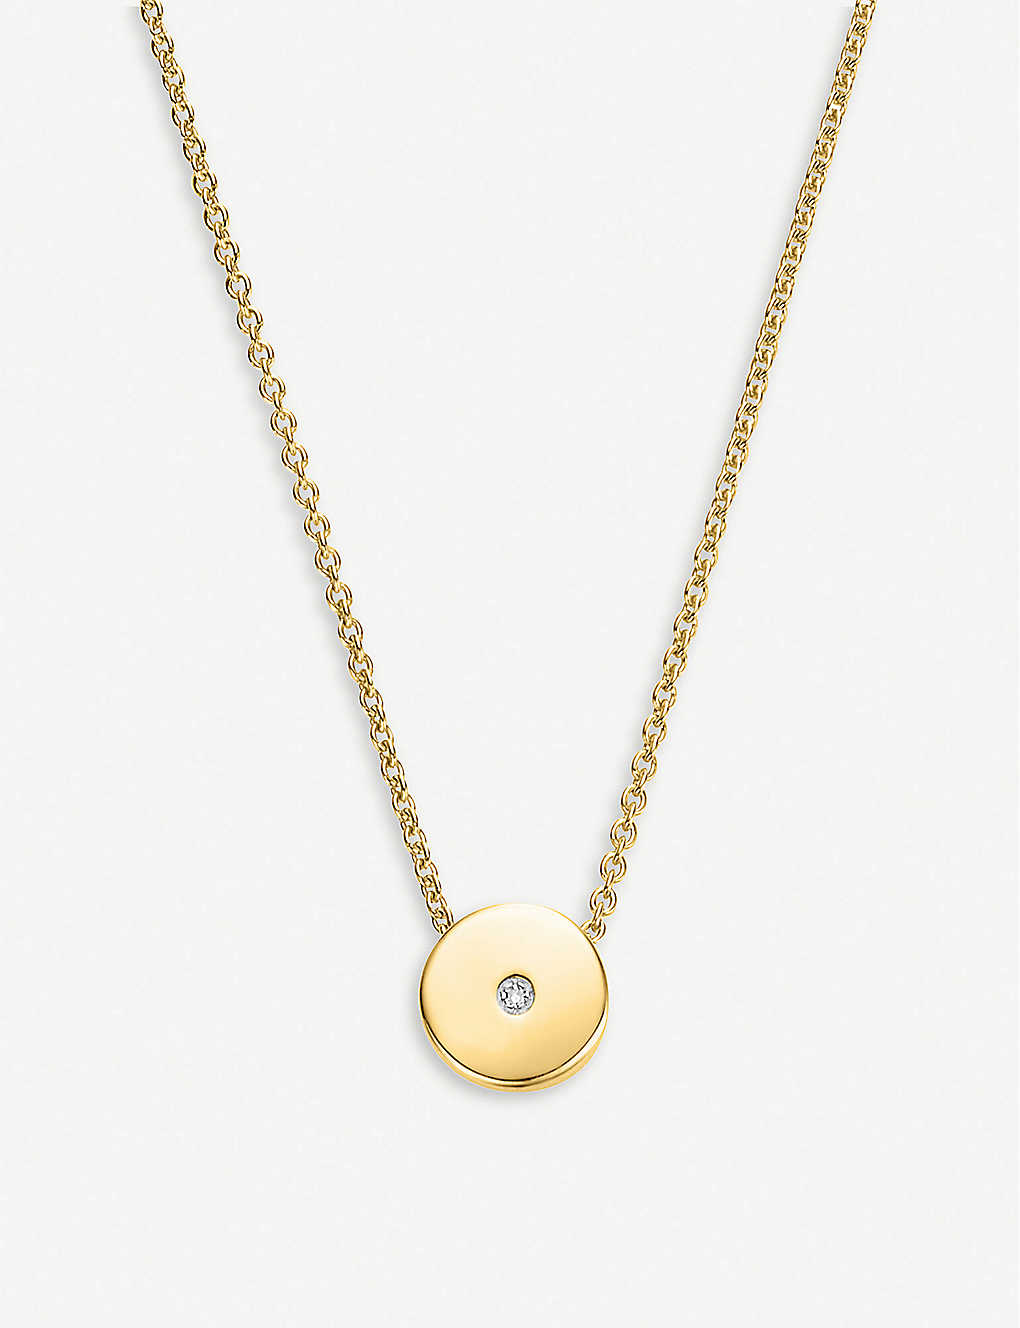 MONICA VINADER: Linear Solo 18ct yellow-gold vermeil and diamond necklace